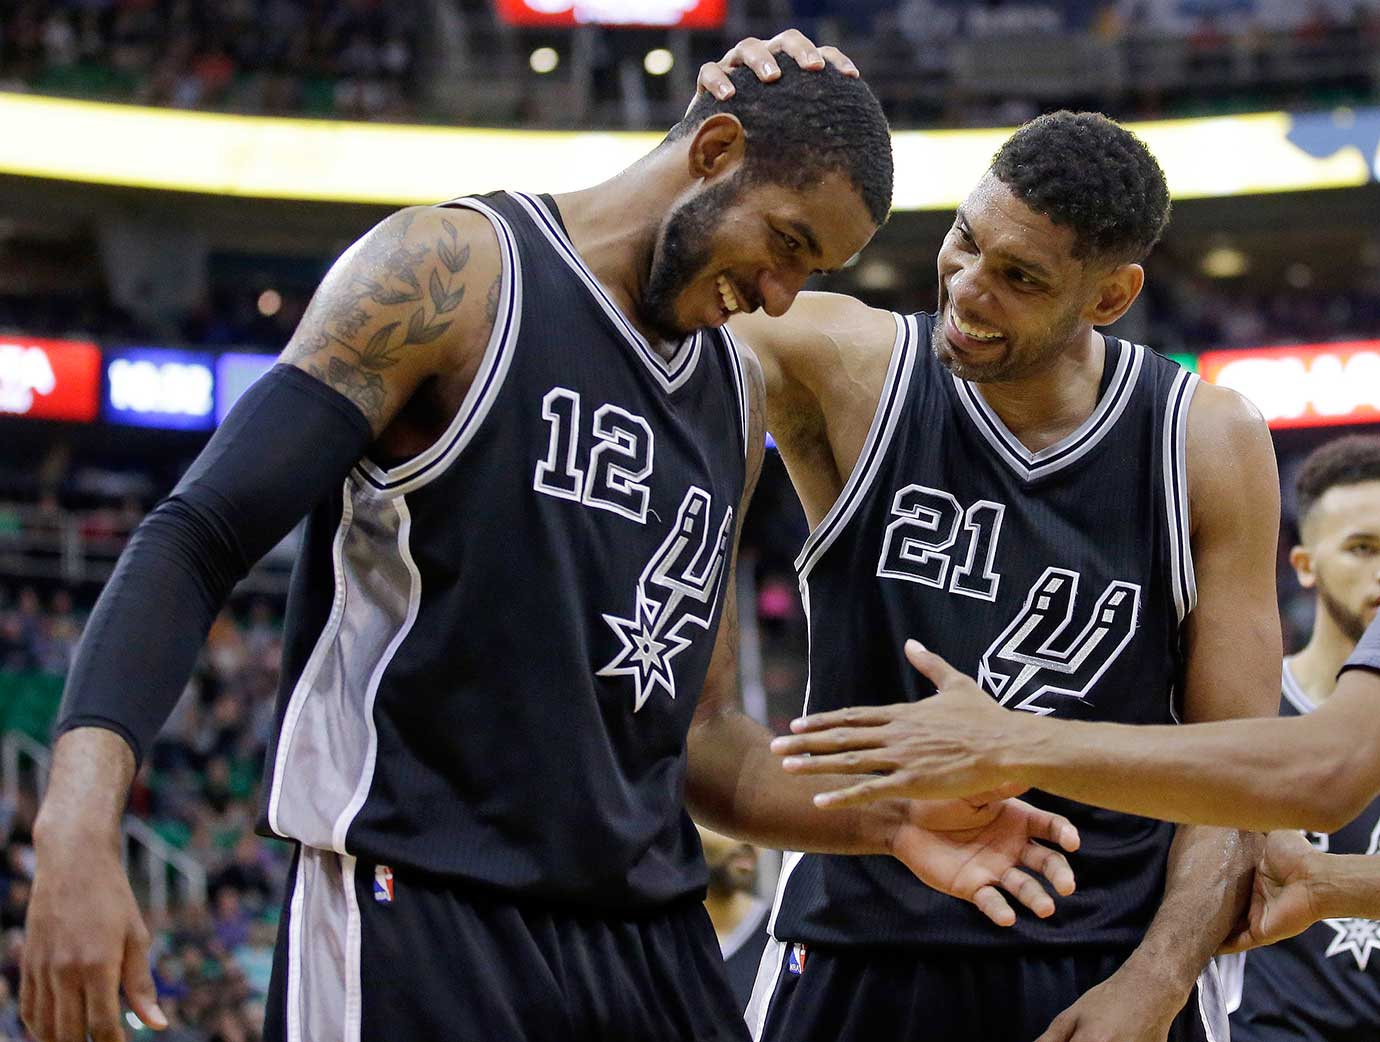 San Antonio center Tim Duncan (21) and LaMarcus Aldridge celebrate a 96-78 win at Utah.